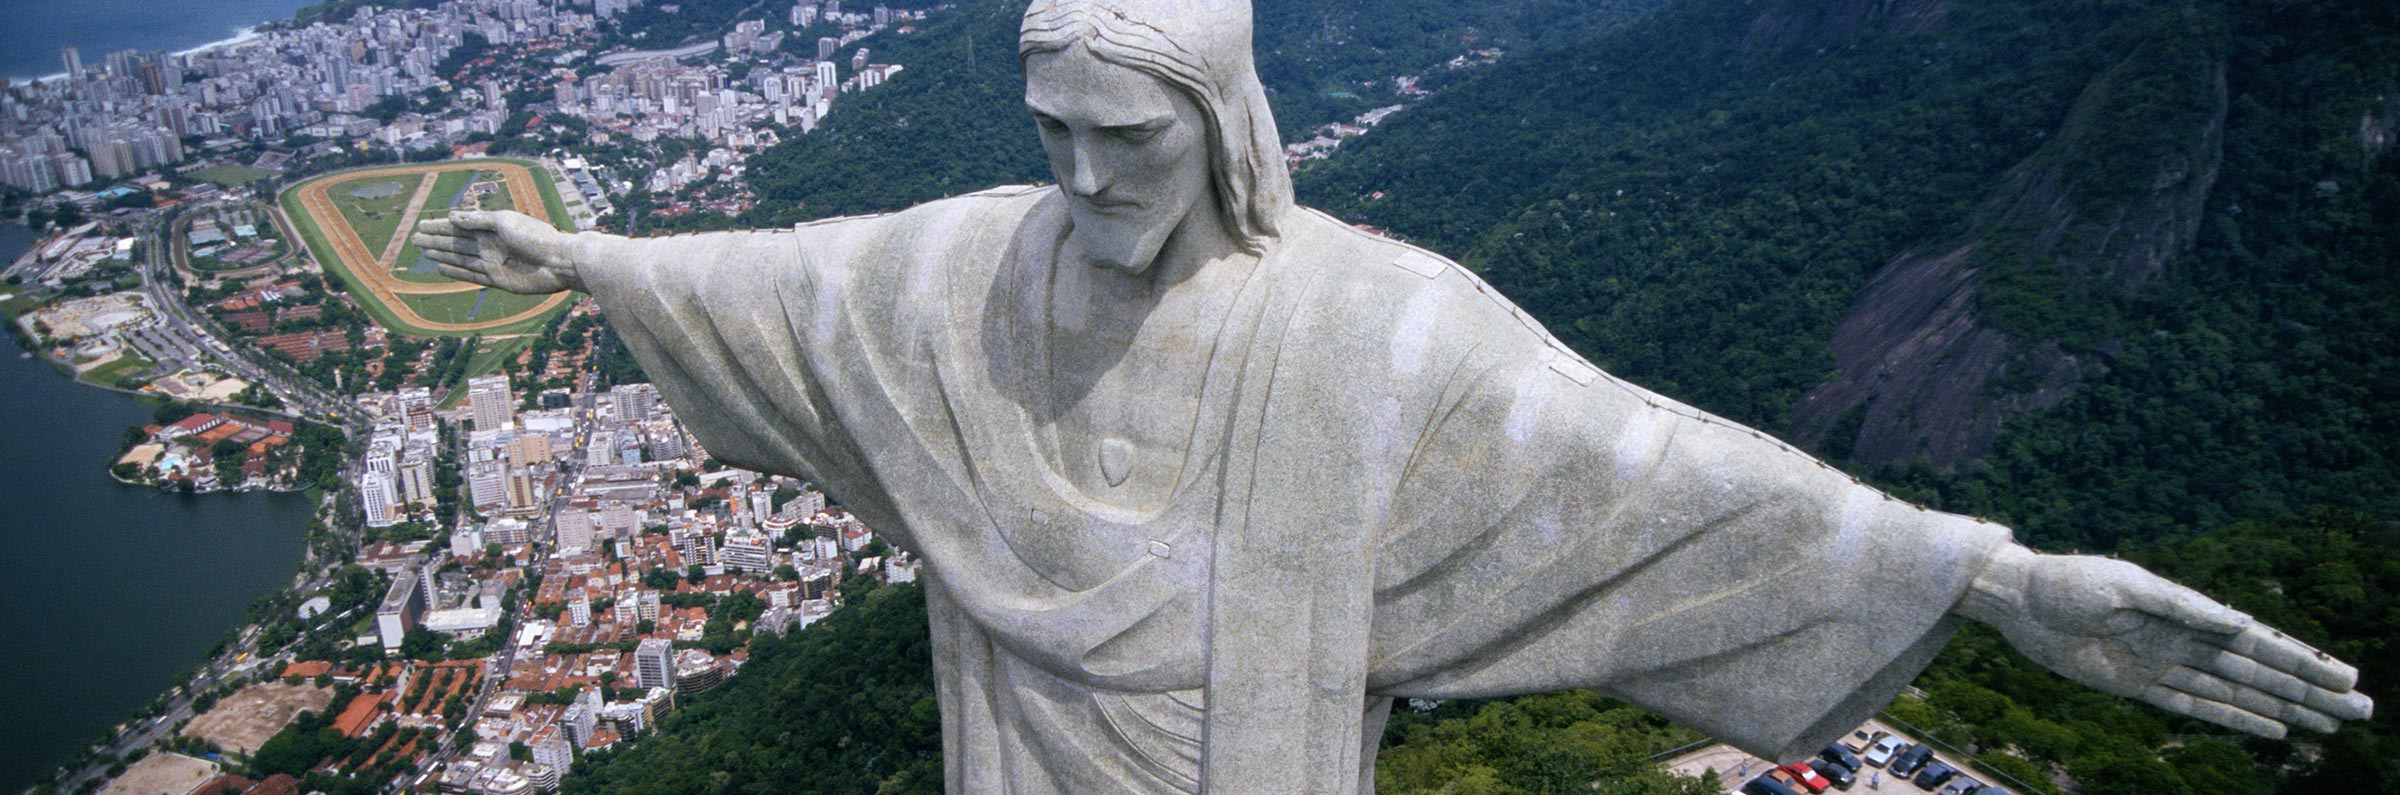 Sights and attractions in Rio